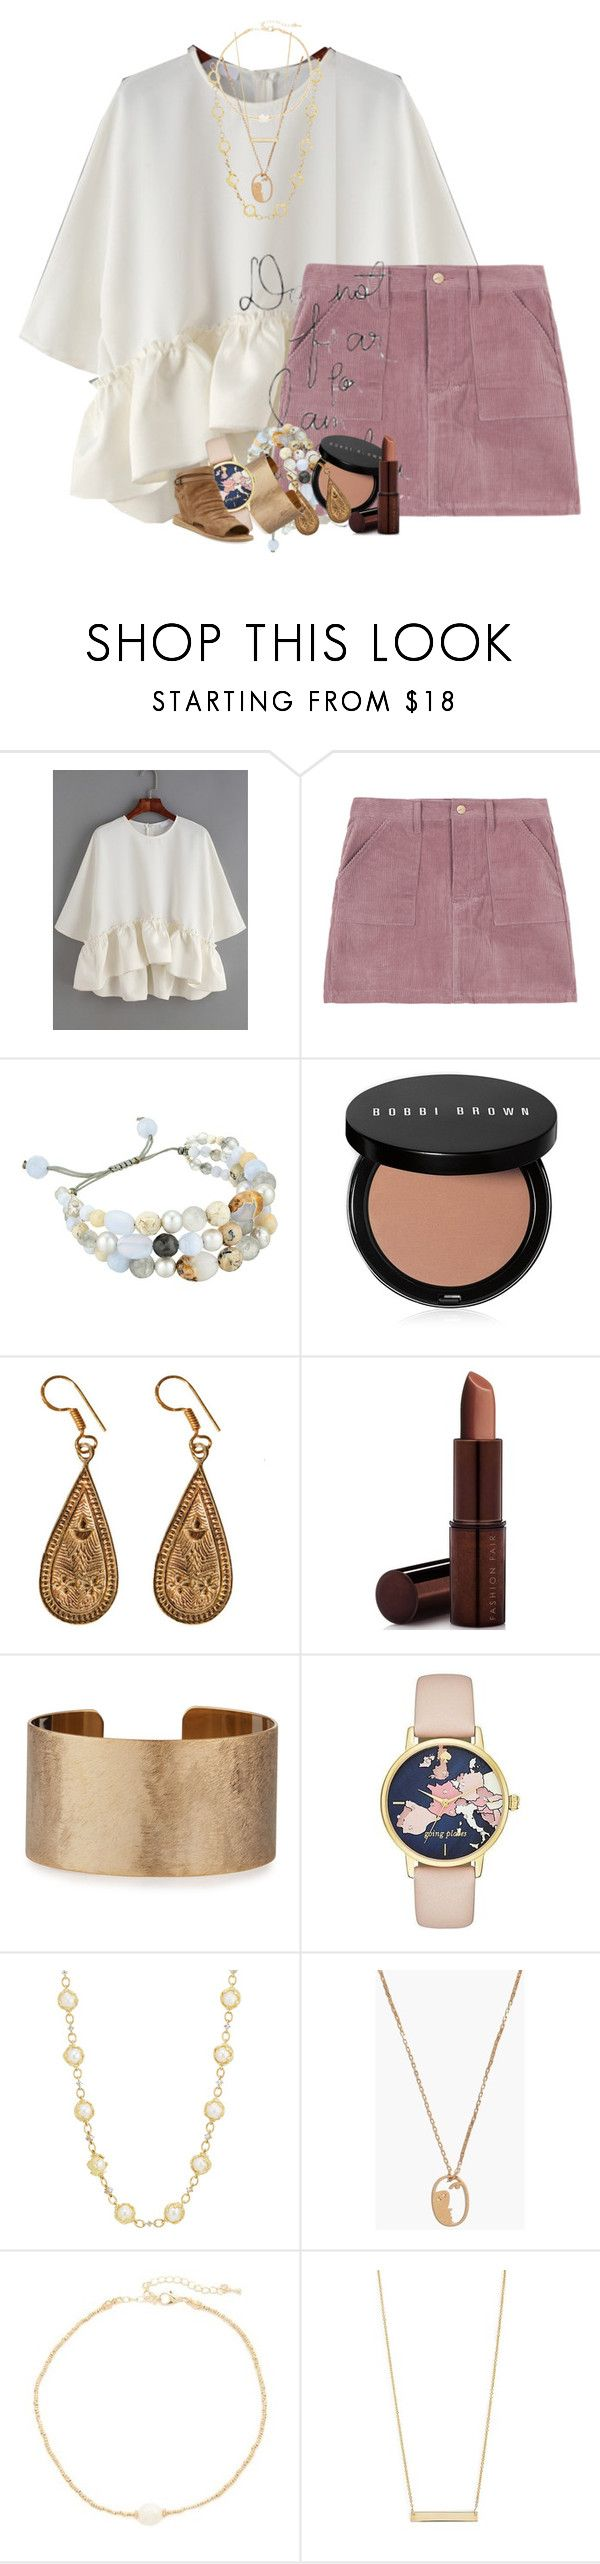 """""""HELP rtd"""" by livnewell ❤ liked on Polyvore featuring Chan Luu, Bobbi Brown Cosmetics, Urbiana, Fashion Fair, Panacea, Kate Spade, Madewell, Jules Smith, Bony Levy and Vince"""